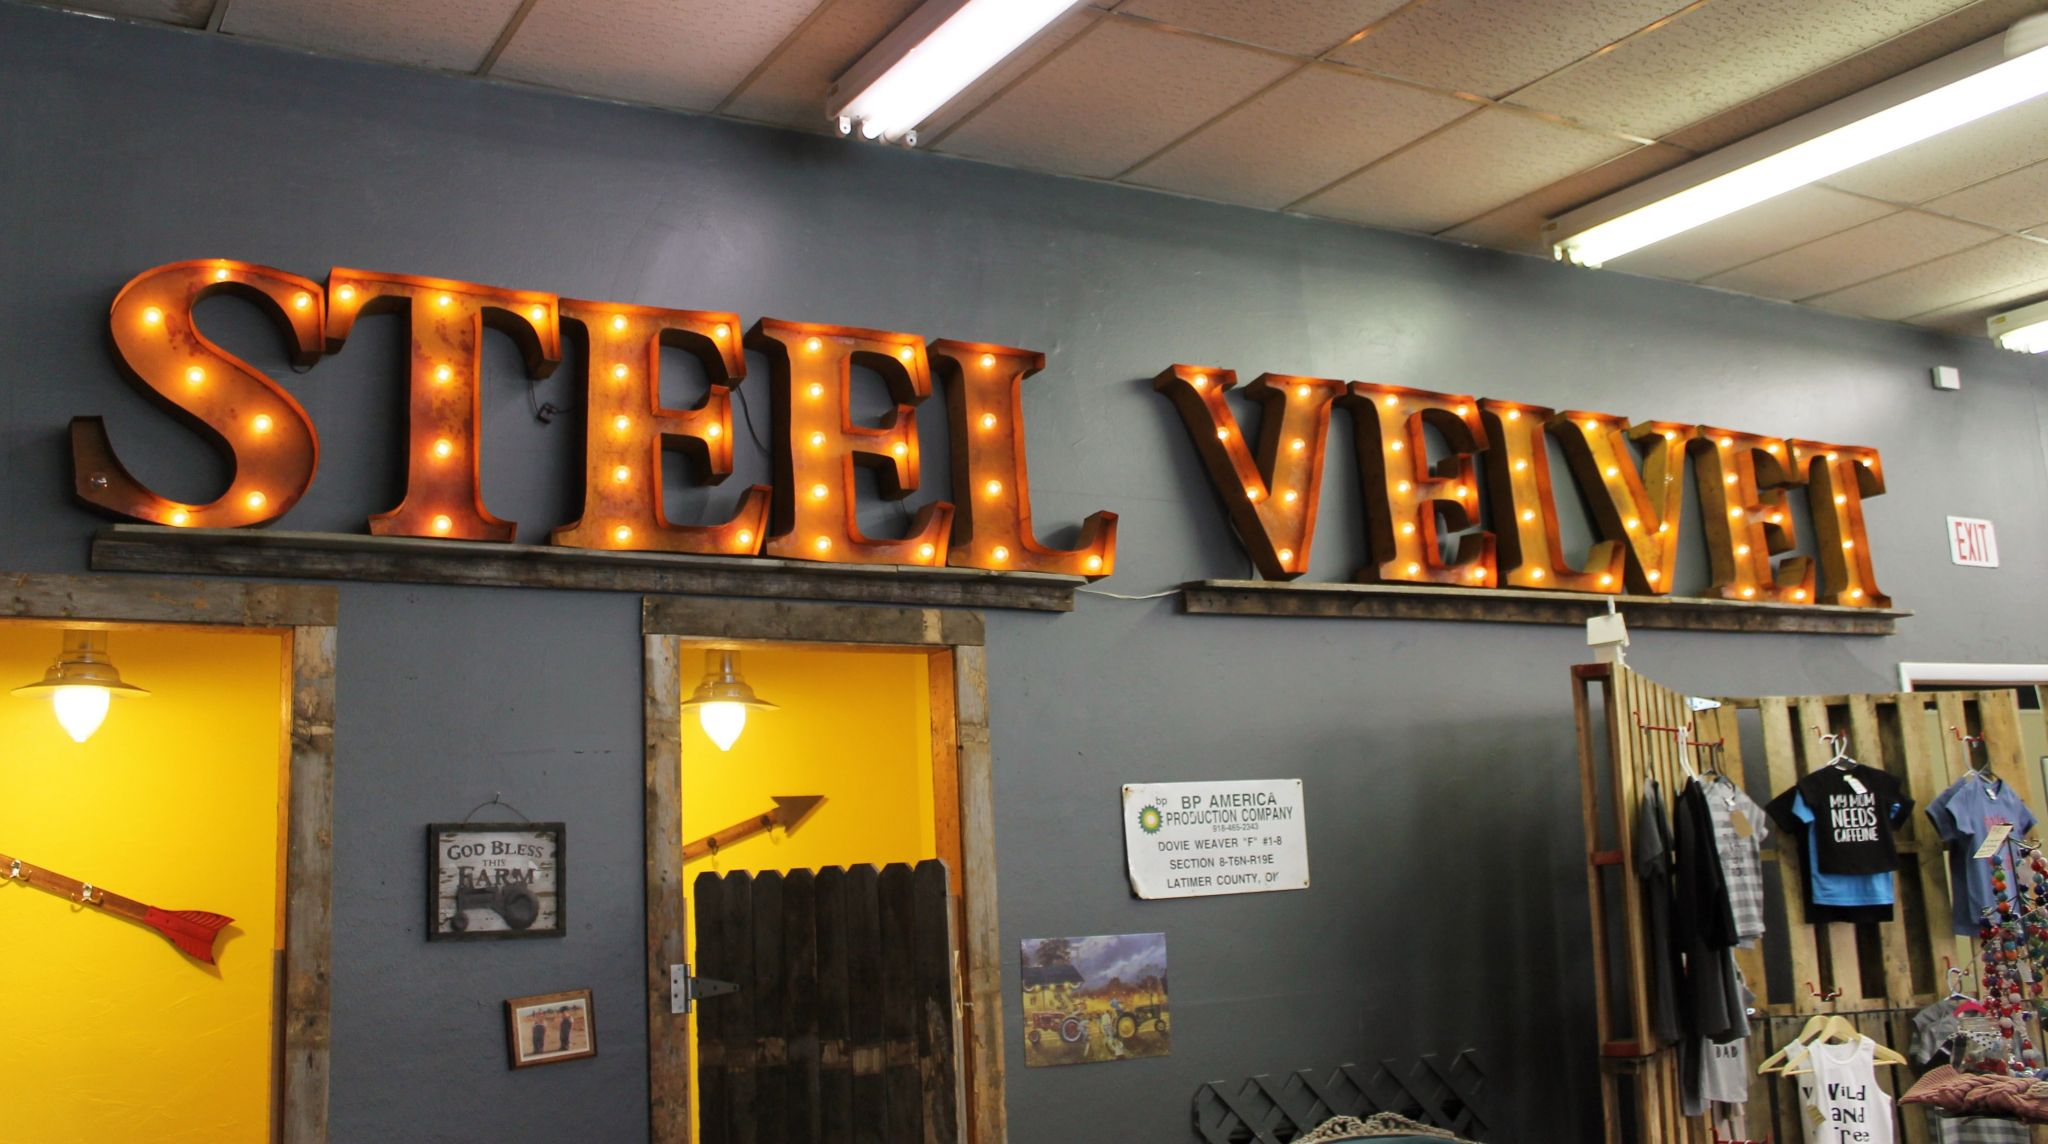 Steel Velvet in Chickasha